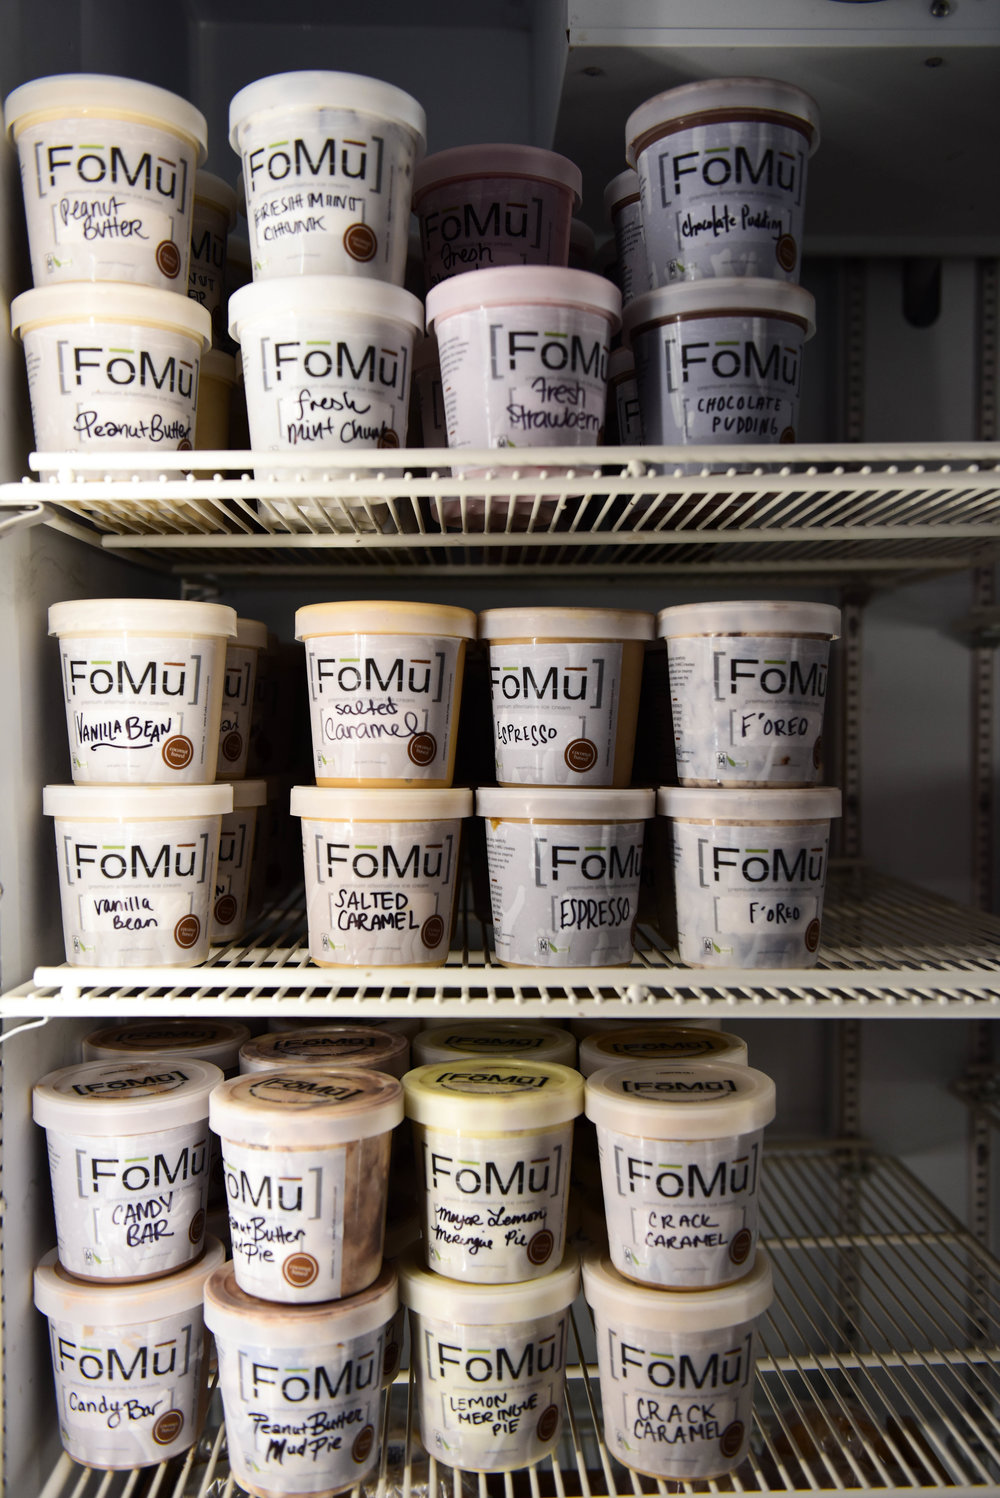 When the company started, it was selling directly to restaurants and other specialty stores. Jalal and Tang happened upon the empty storefront in Allston that would become their first brick and mortar location, and decided to try FoMu as a consumer-facing brand.